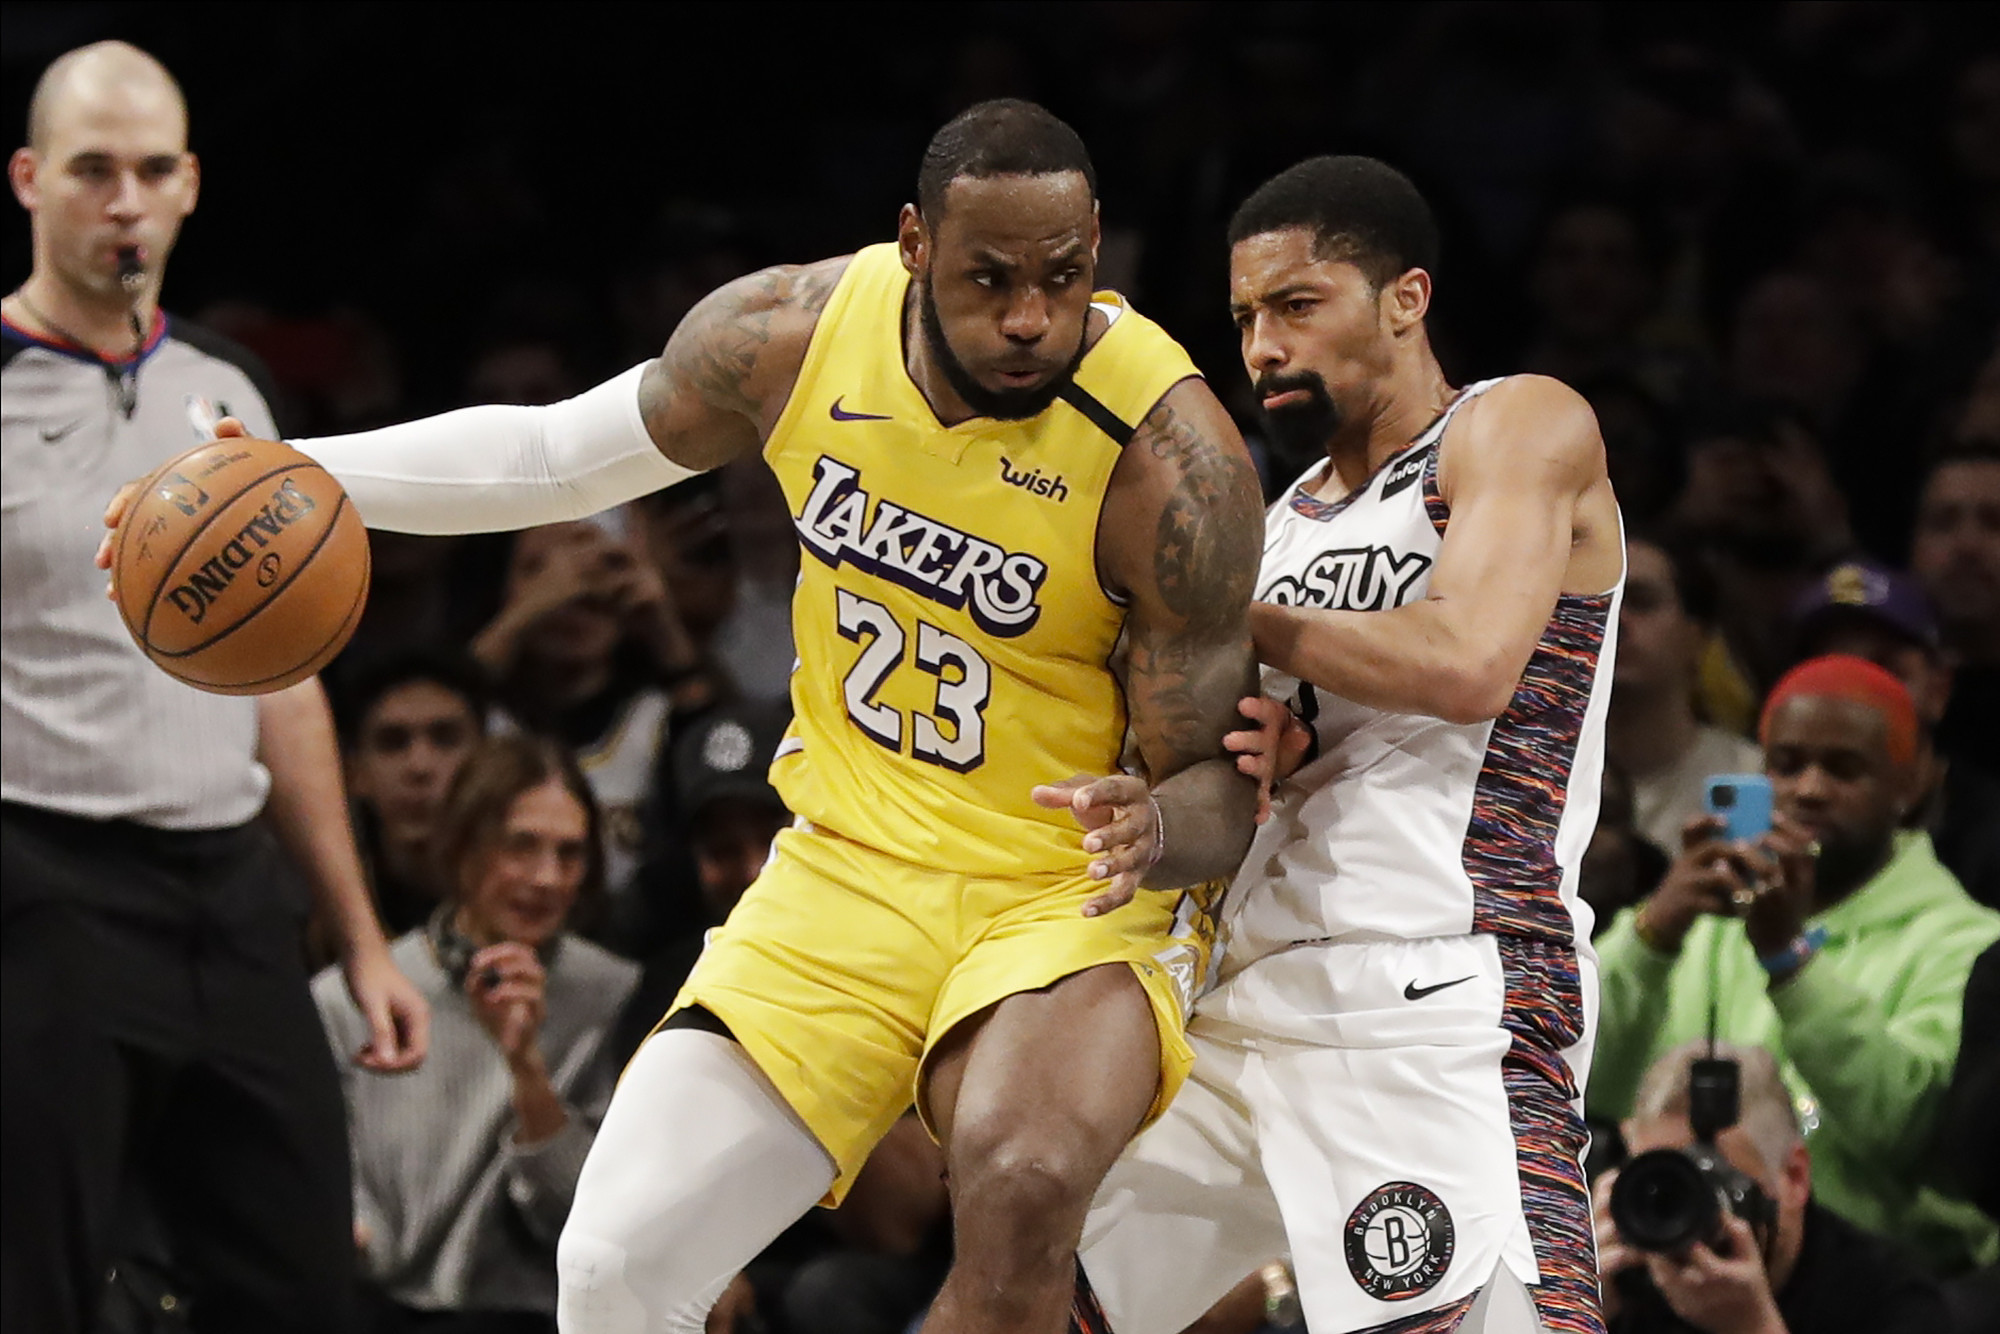 The Lakers showed the Nets what real champions look like